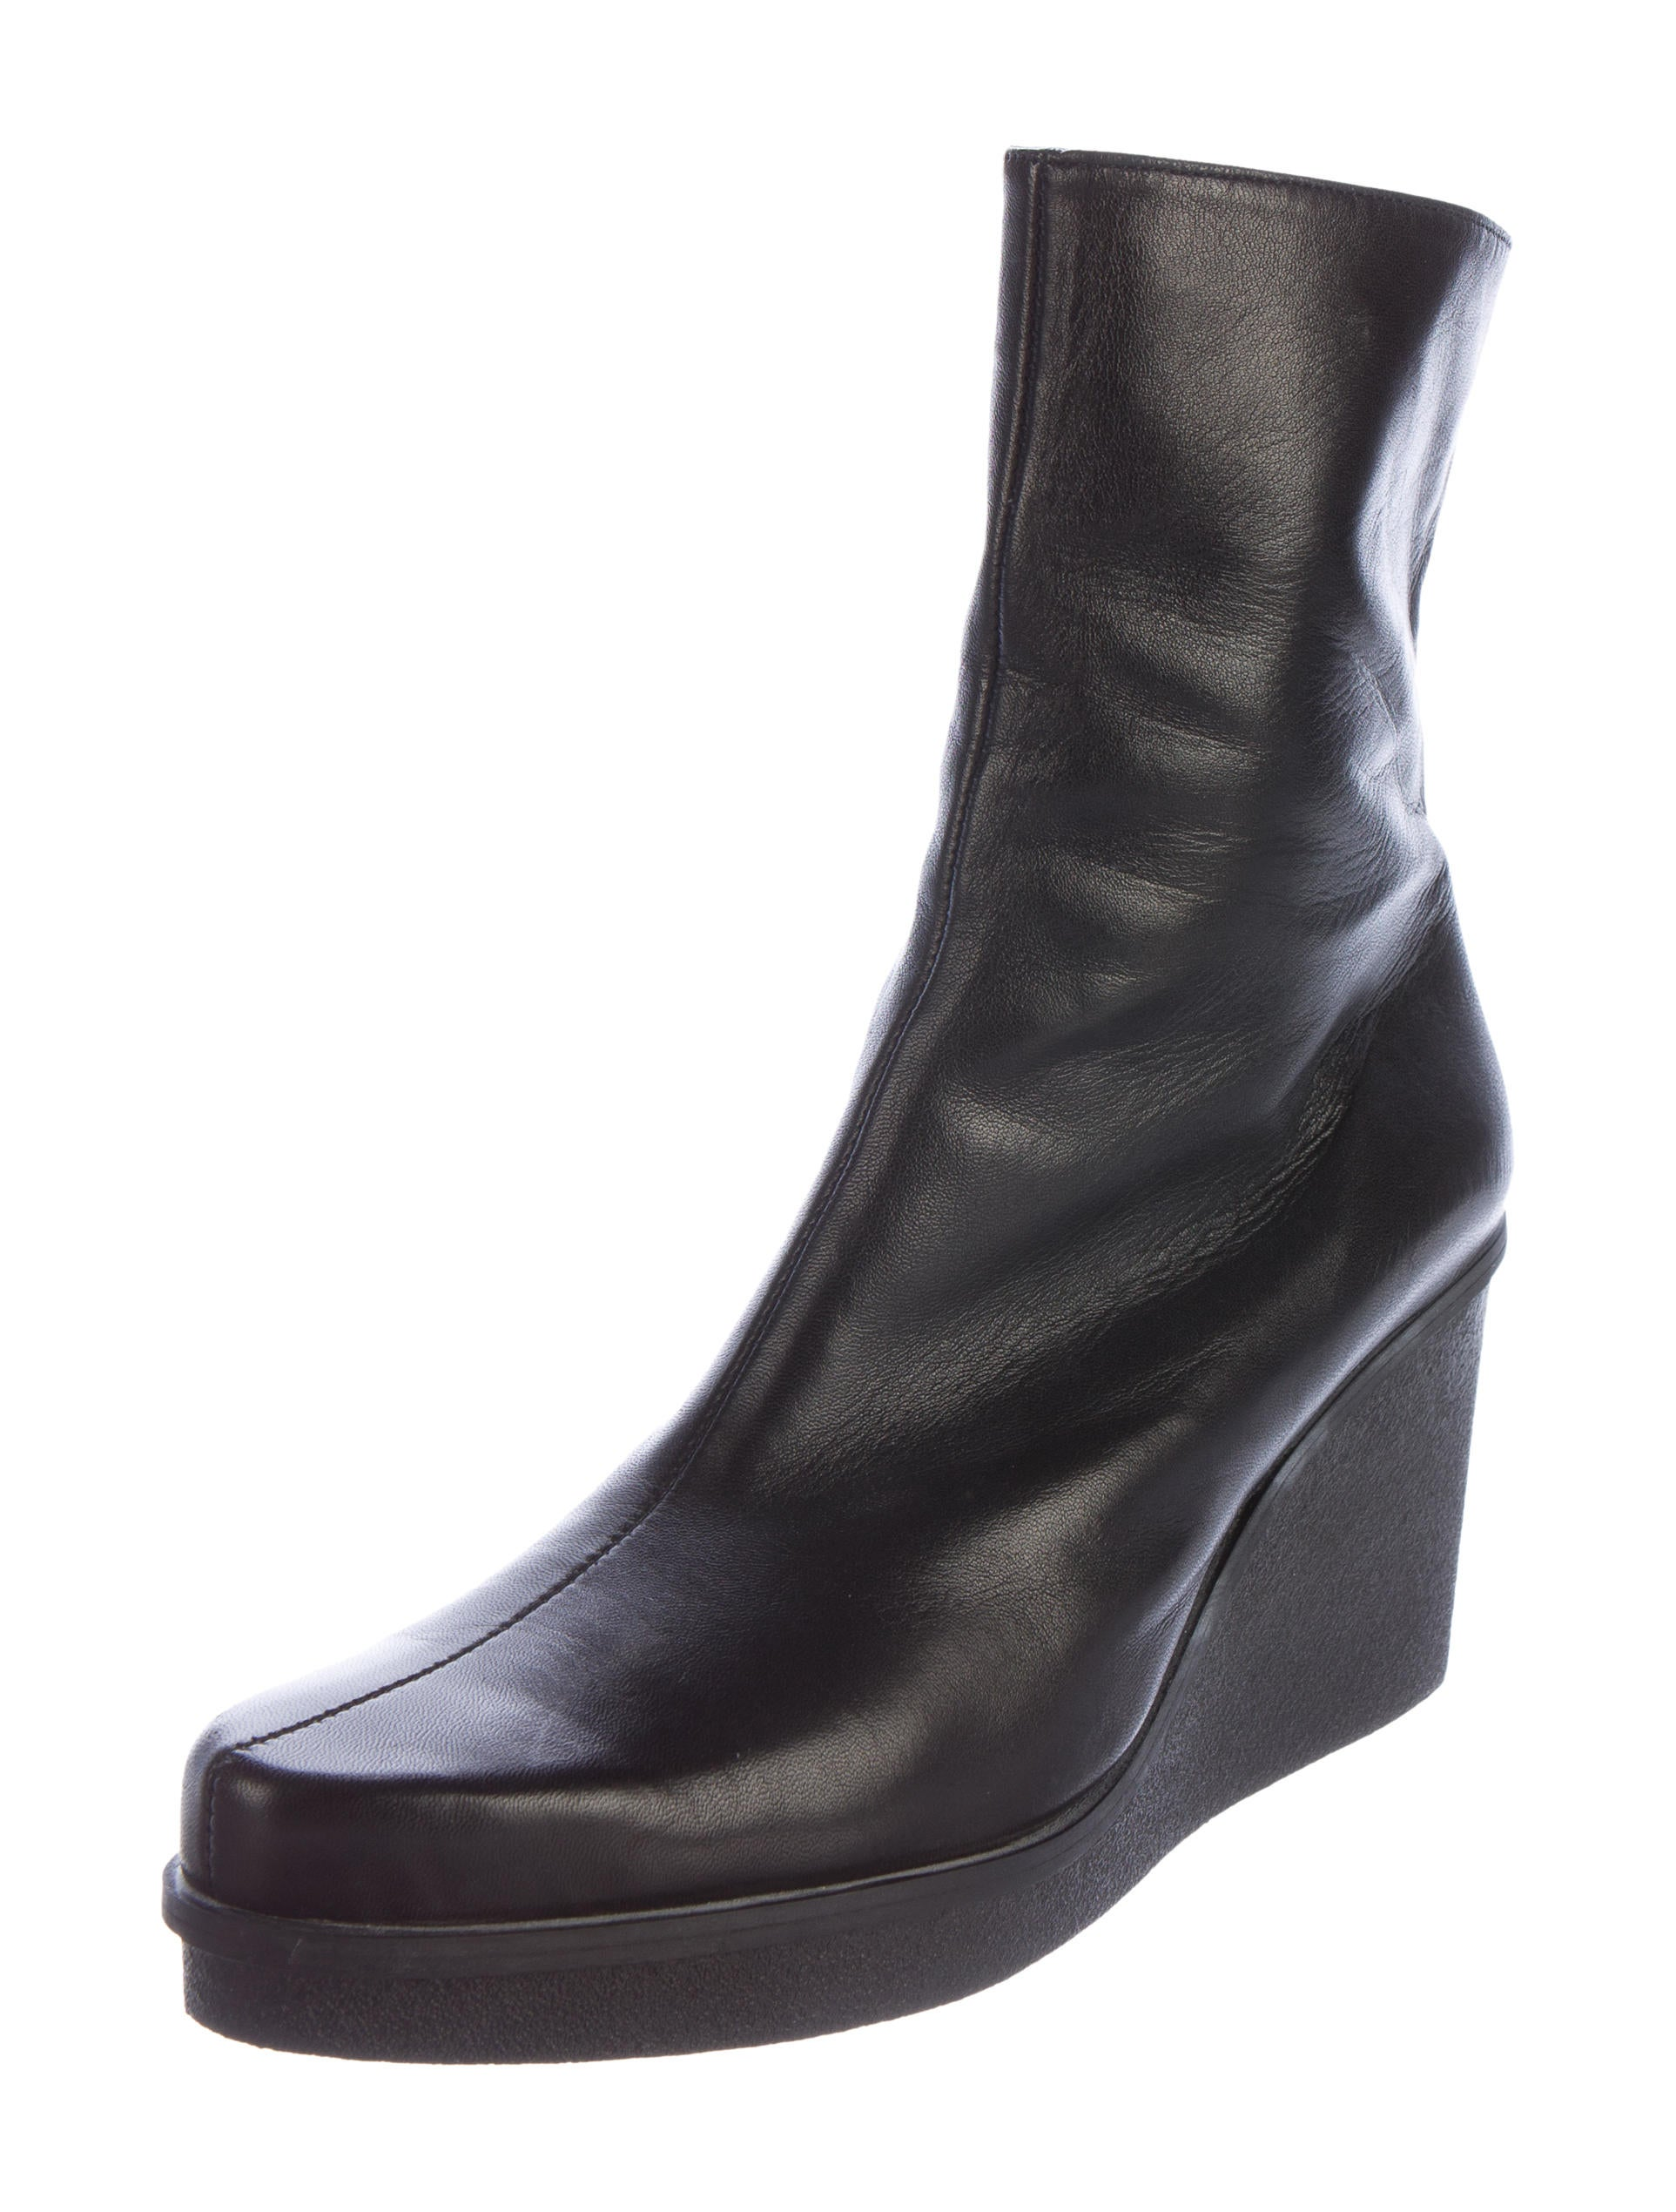 robert clergerie leather wedge boots shoes rog24892